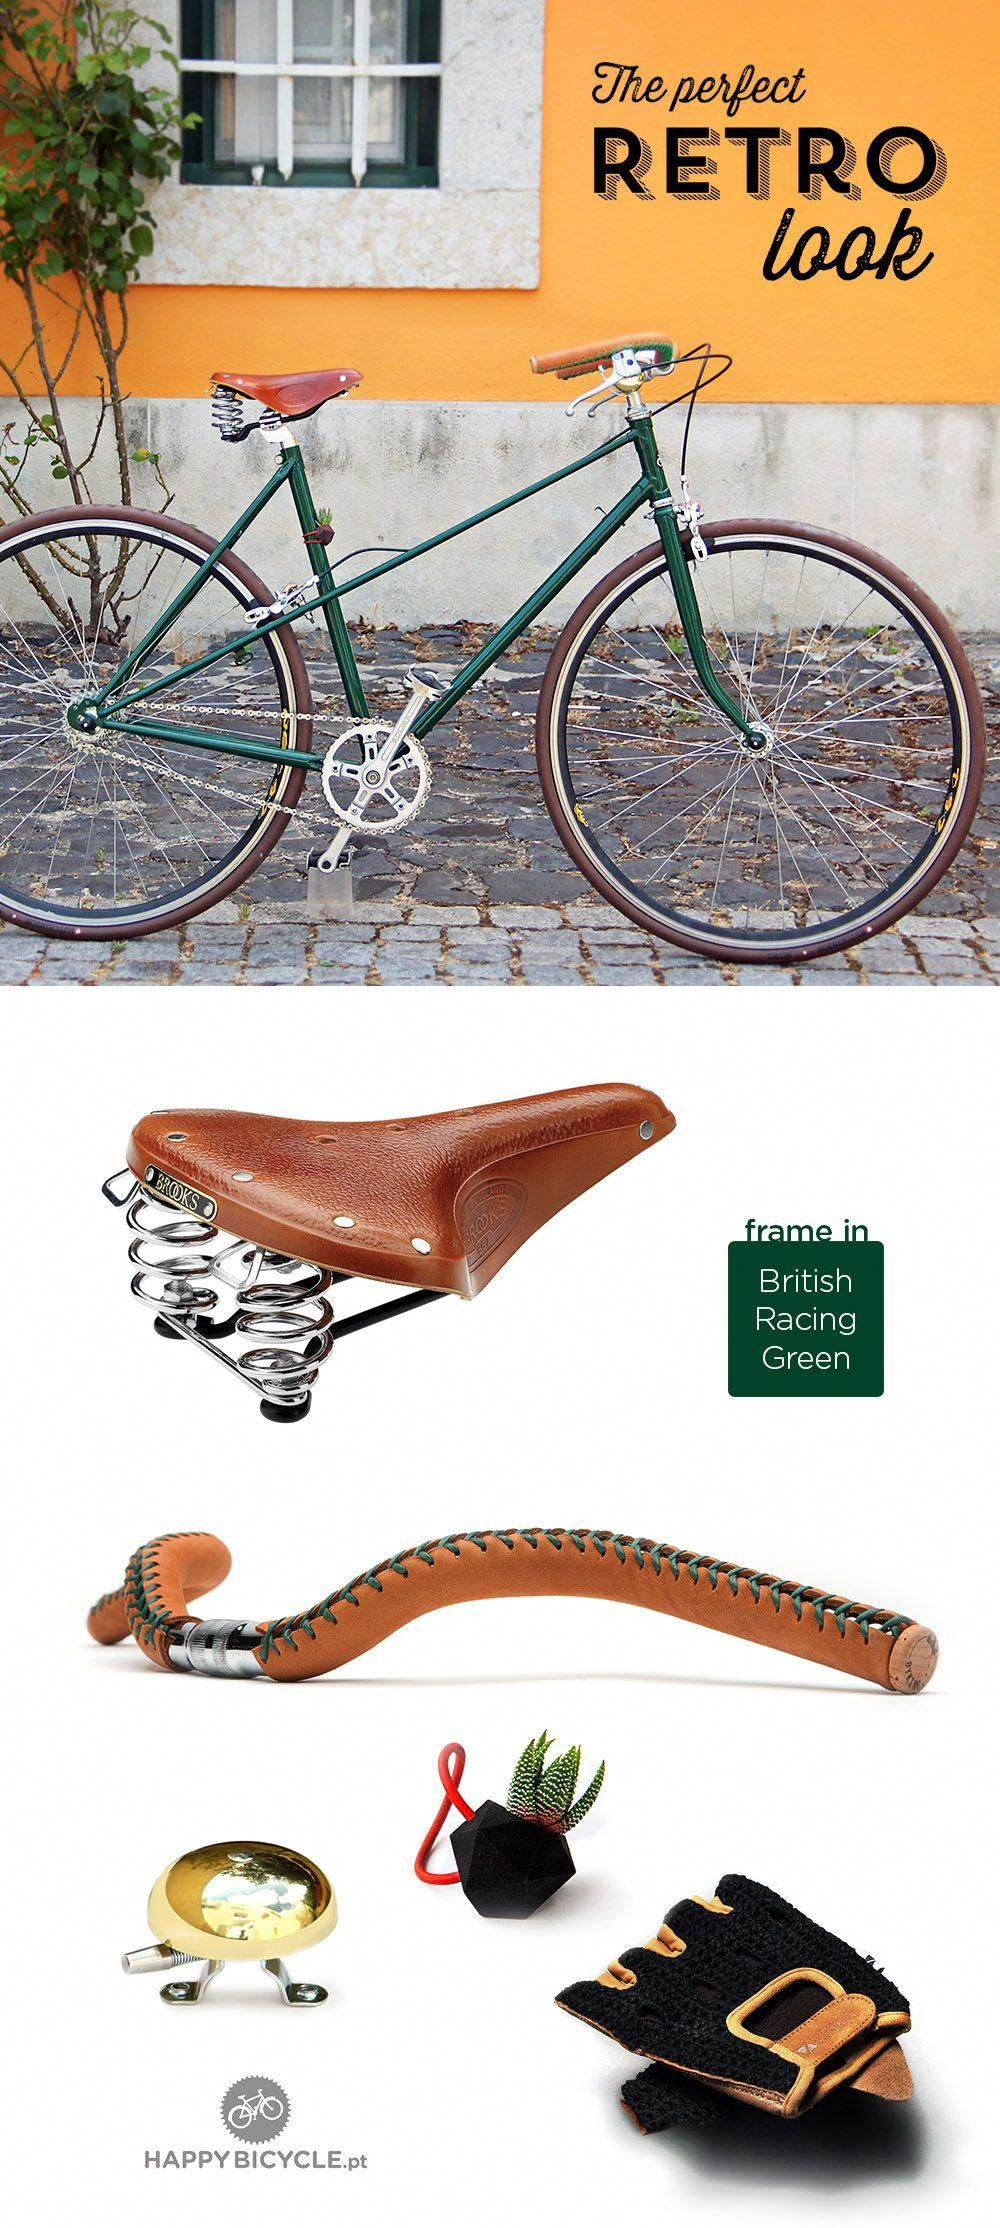 The Best Retro Look Ideas Bicycle Design And Accessories By